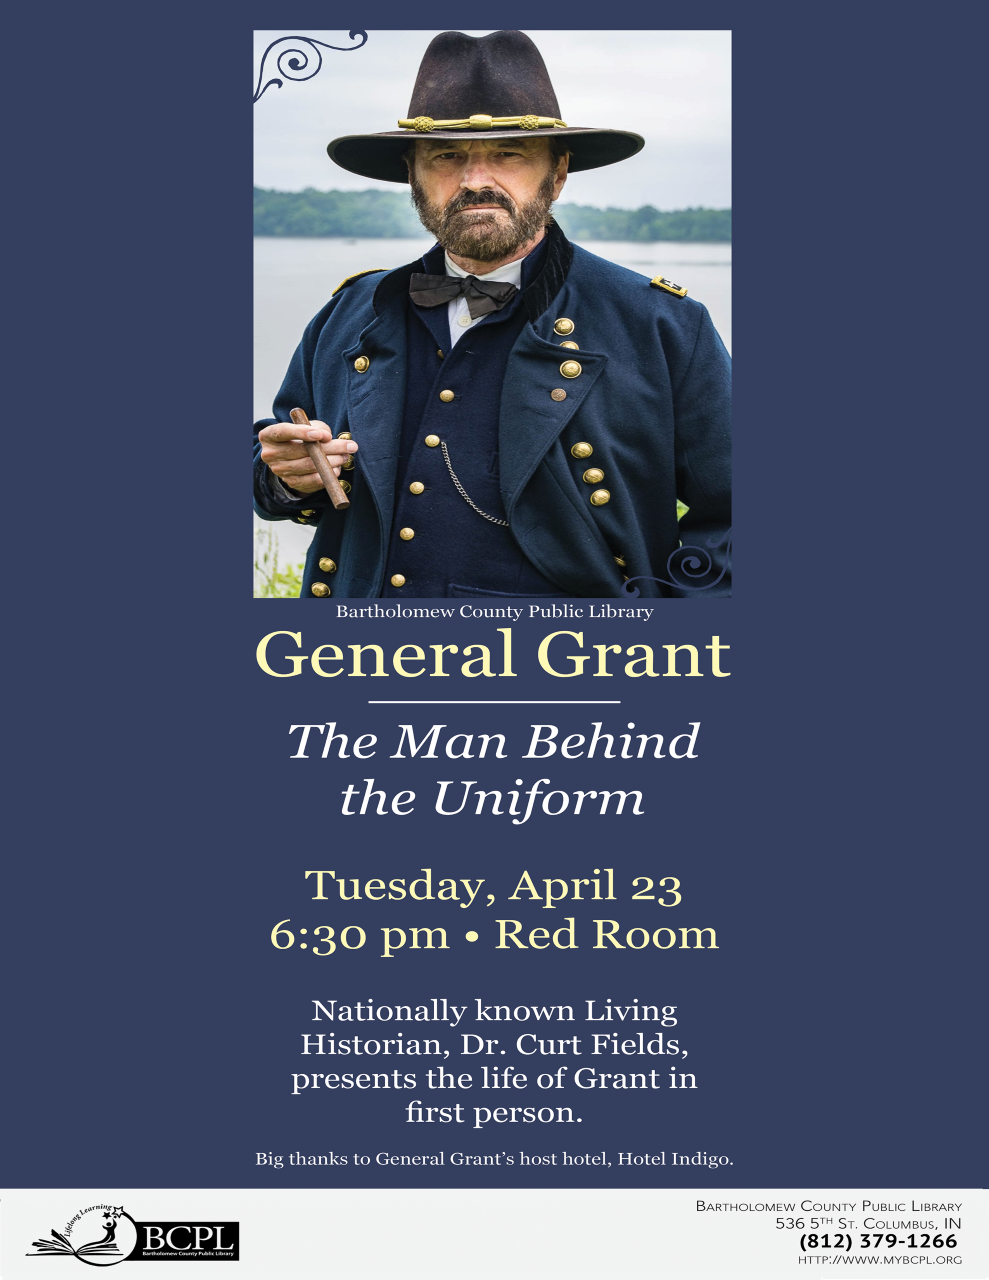 General Grant Returns to the Bartholomew County Public Library in Columbus, Indiana, on Tuesday, April 23rd, Instant @ Bartholomew County Public Library